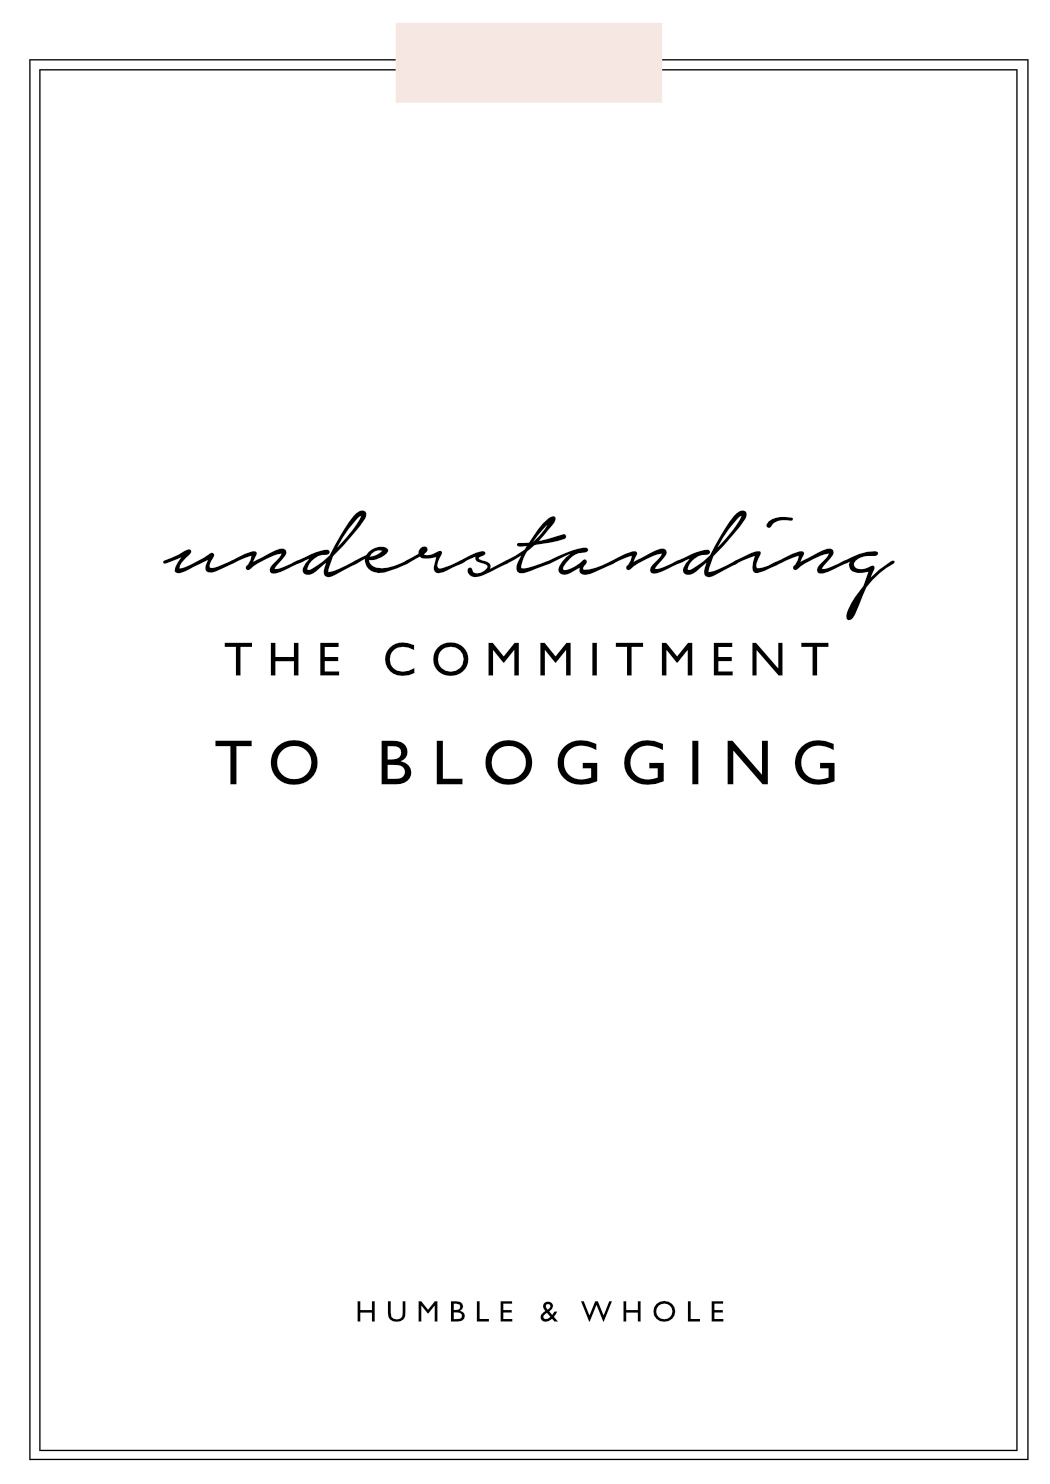 You've got your blog up and running, but now what? What does it take to run a successful blog? And what commitment do you need to make to your blog to start strong? Click through to read the three practices that will help your start-up phase in blogging much easier!